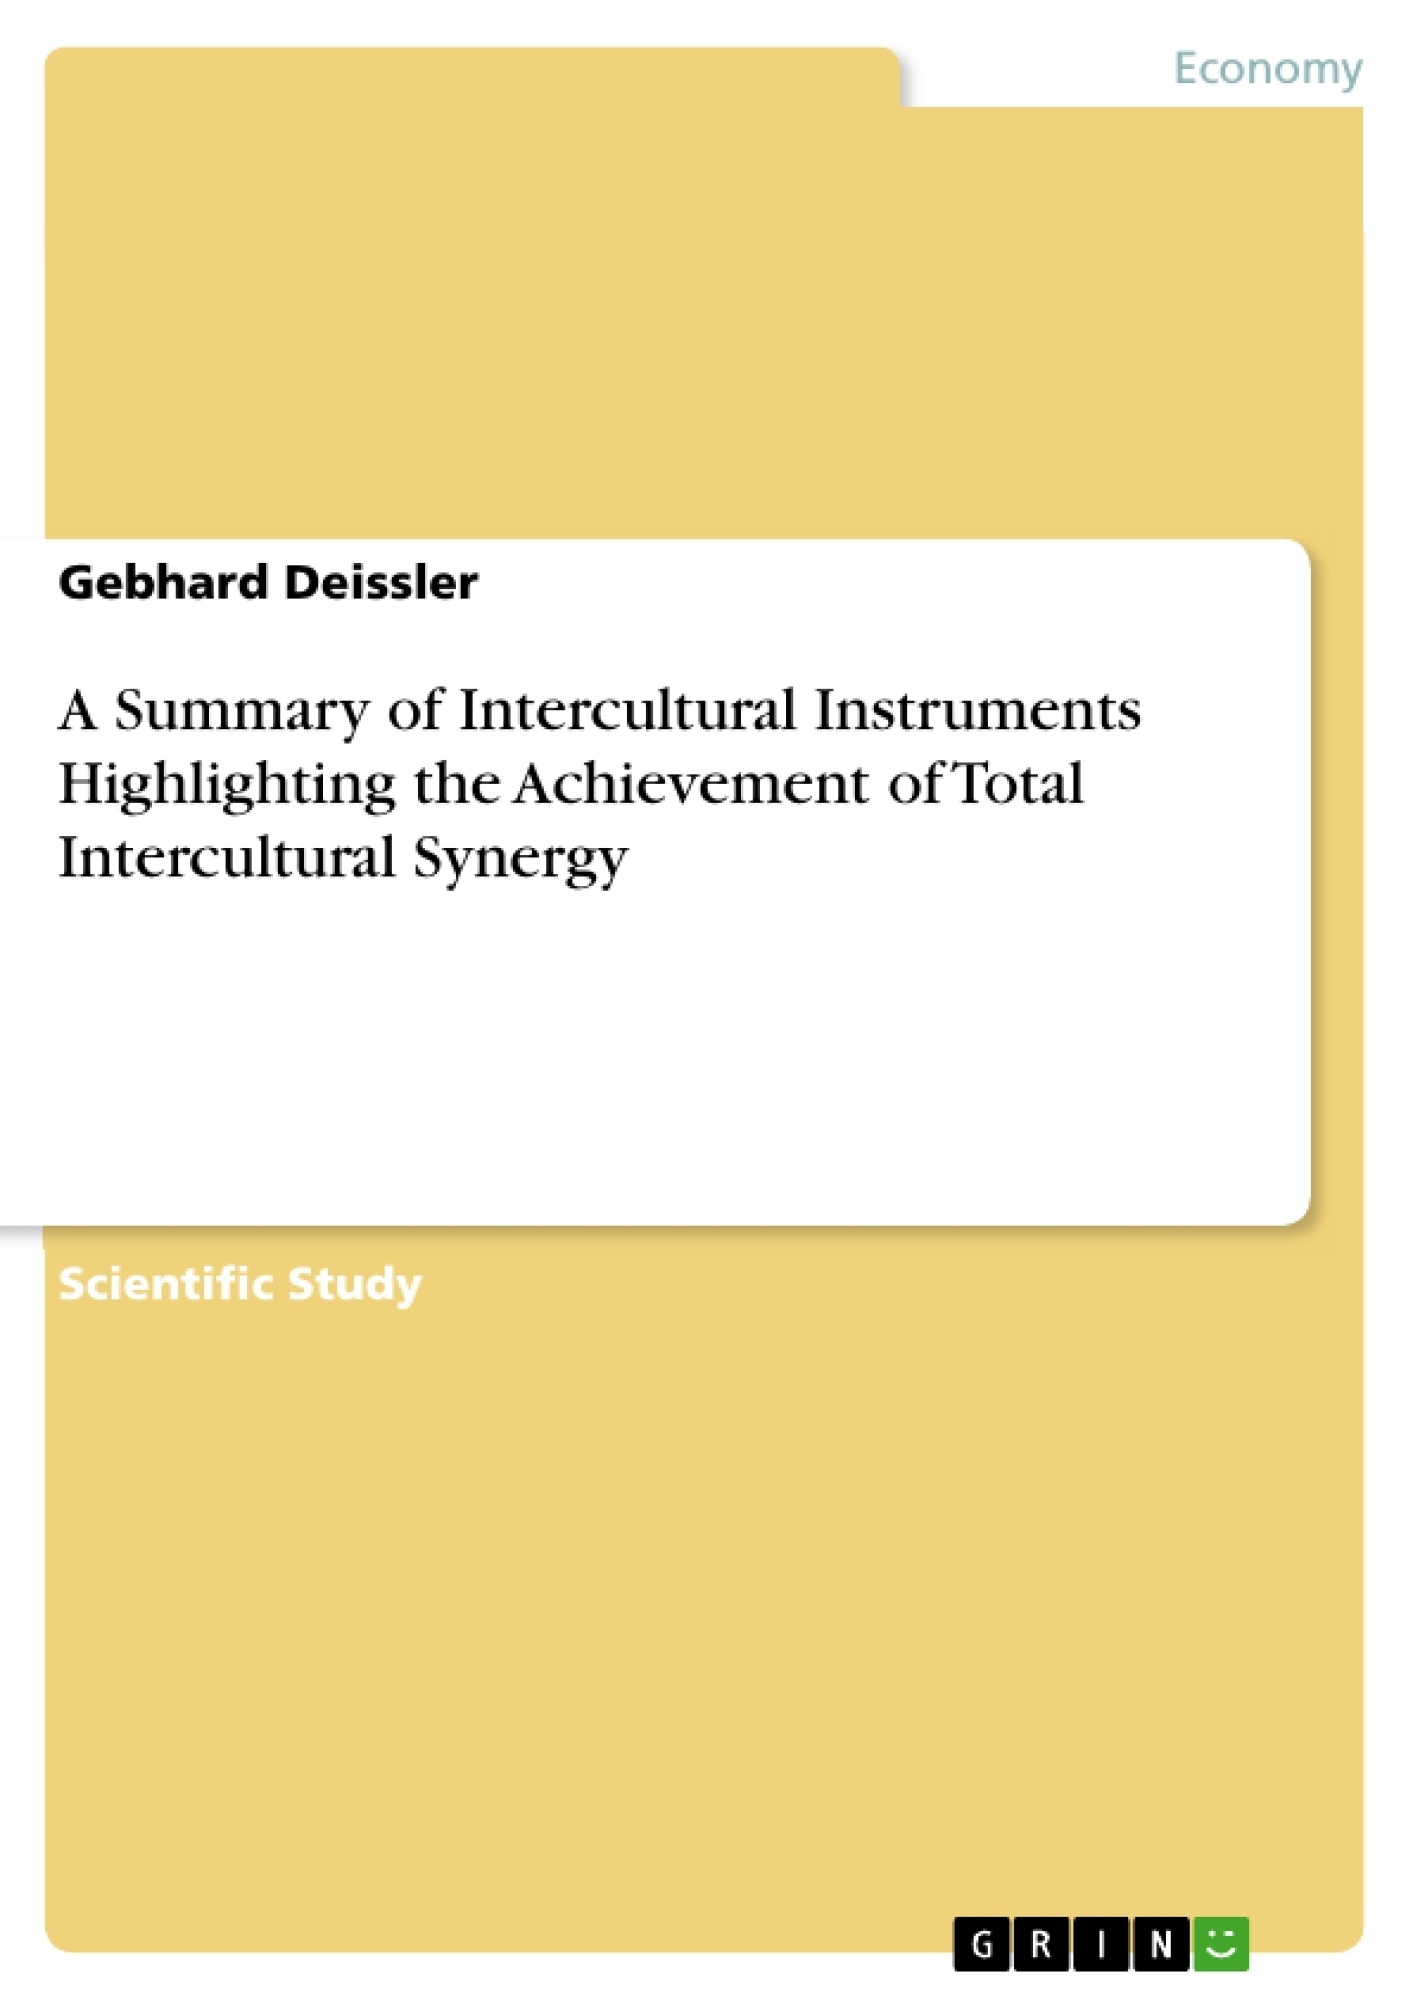 Title: A Summary of Intercultural Instruments Highlighting the Achievement of Total Intercultural Synergy